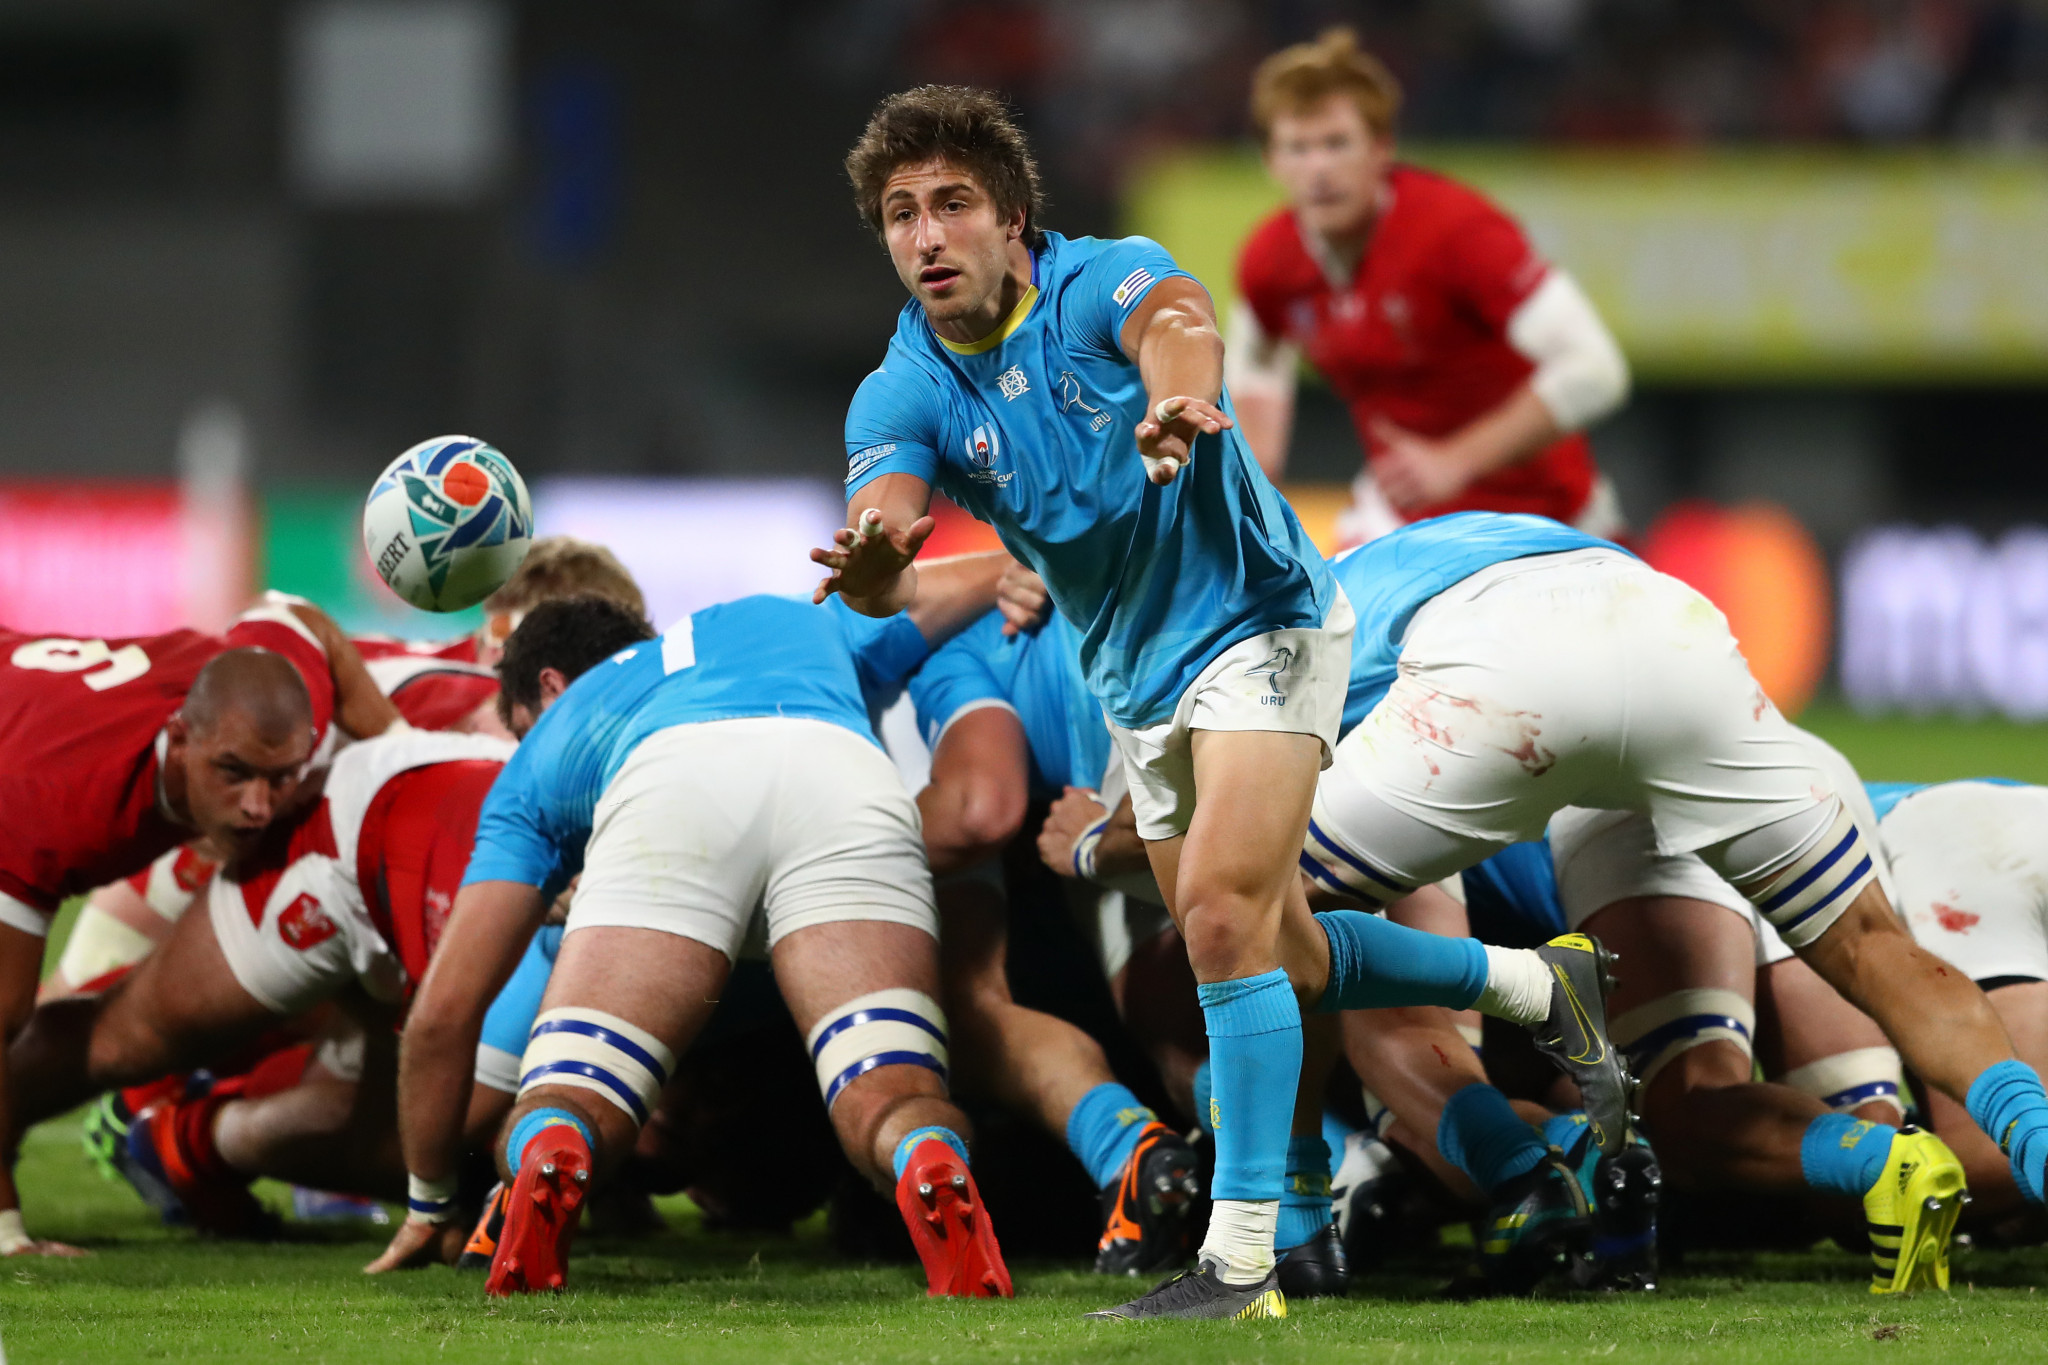 Santiago Arata of Uruguay offloads the ball to a teammate following a scrum ©Getty Images